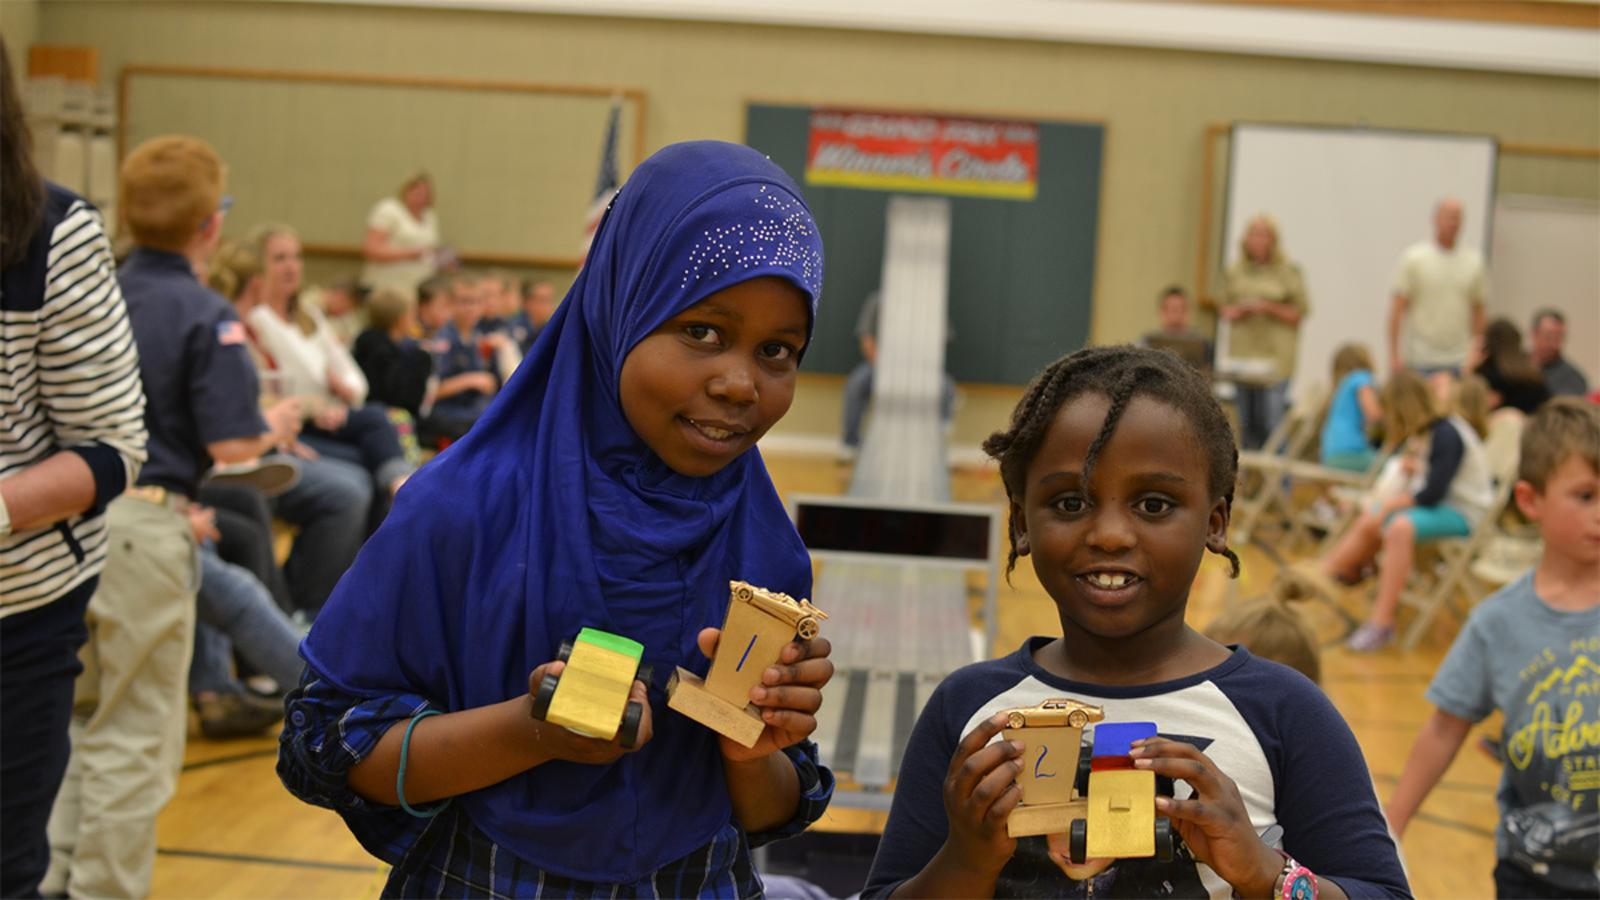 Two refugee girls with pinewood derby cars and trophies.